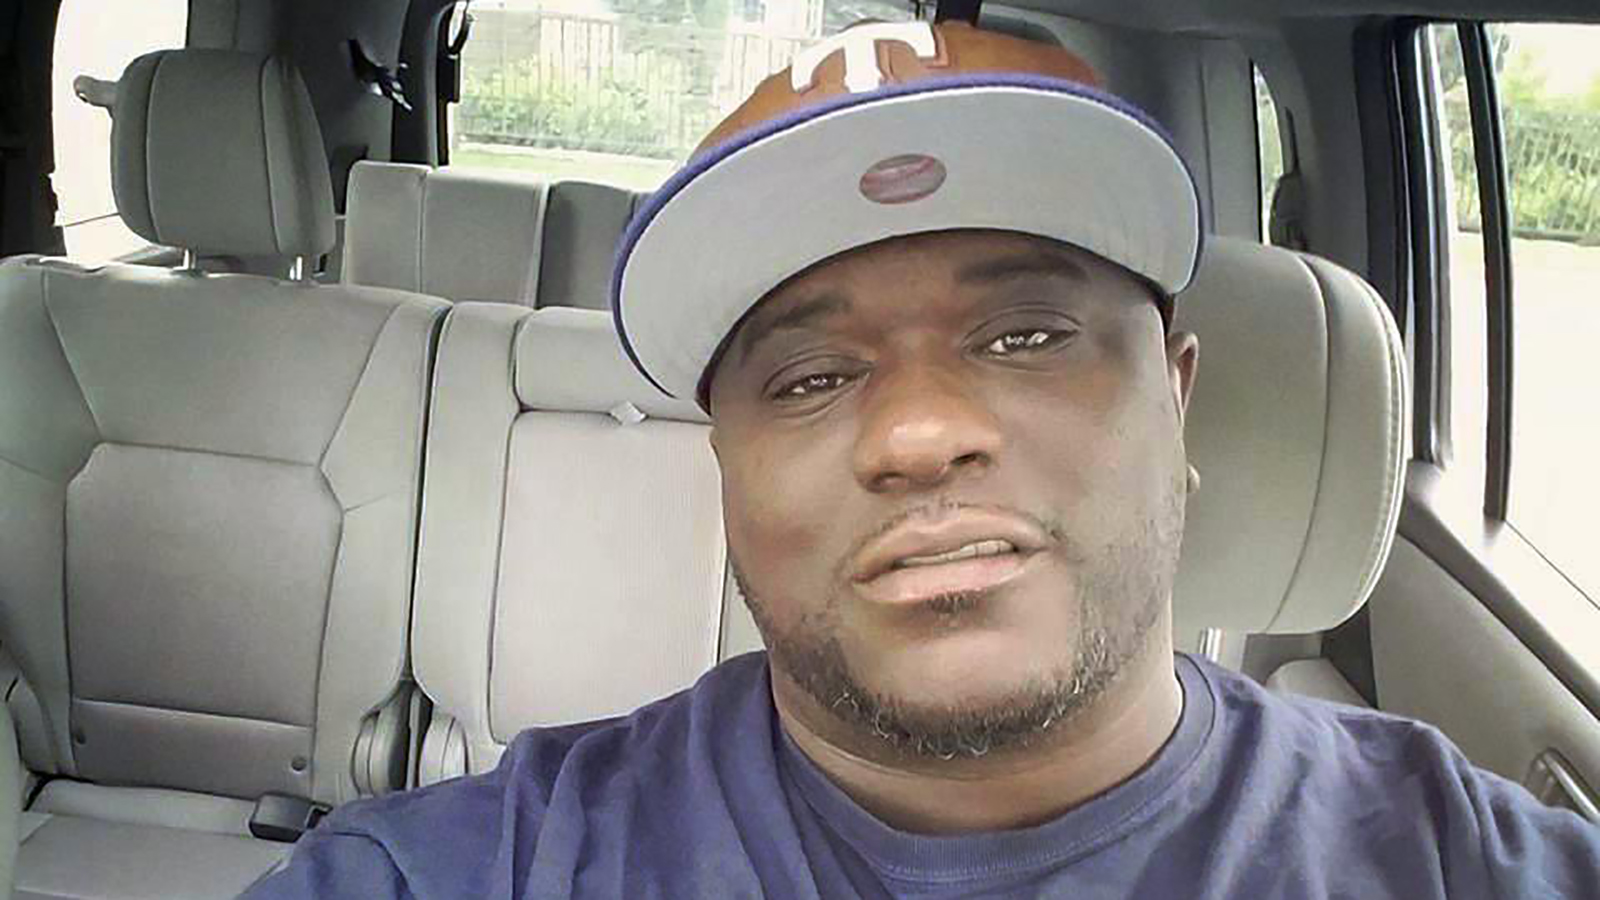 Family of Javier Ambler, a Black man who died during arrest, files wrongful death lawsuit against Williamson County